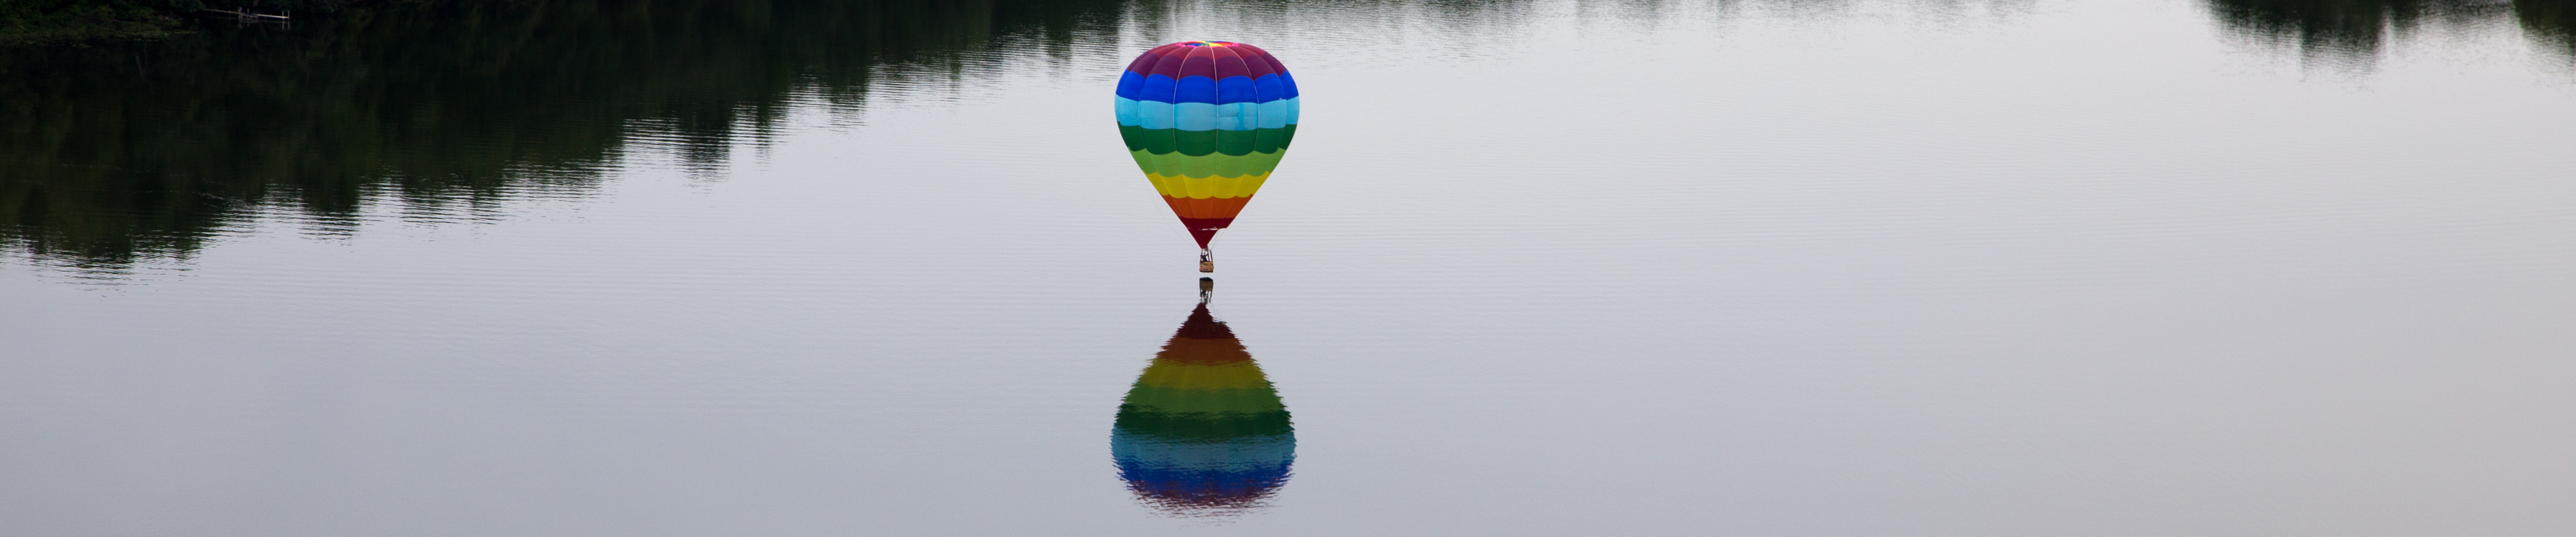 cameron balloons Just some of our wonderful hot-air balloons | see more ideas about balloons, hot air balloon and hot air balloons.